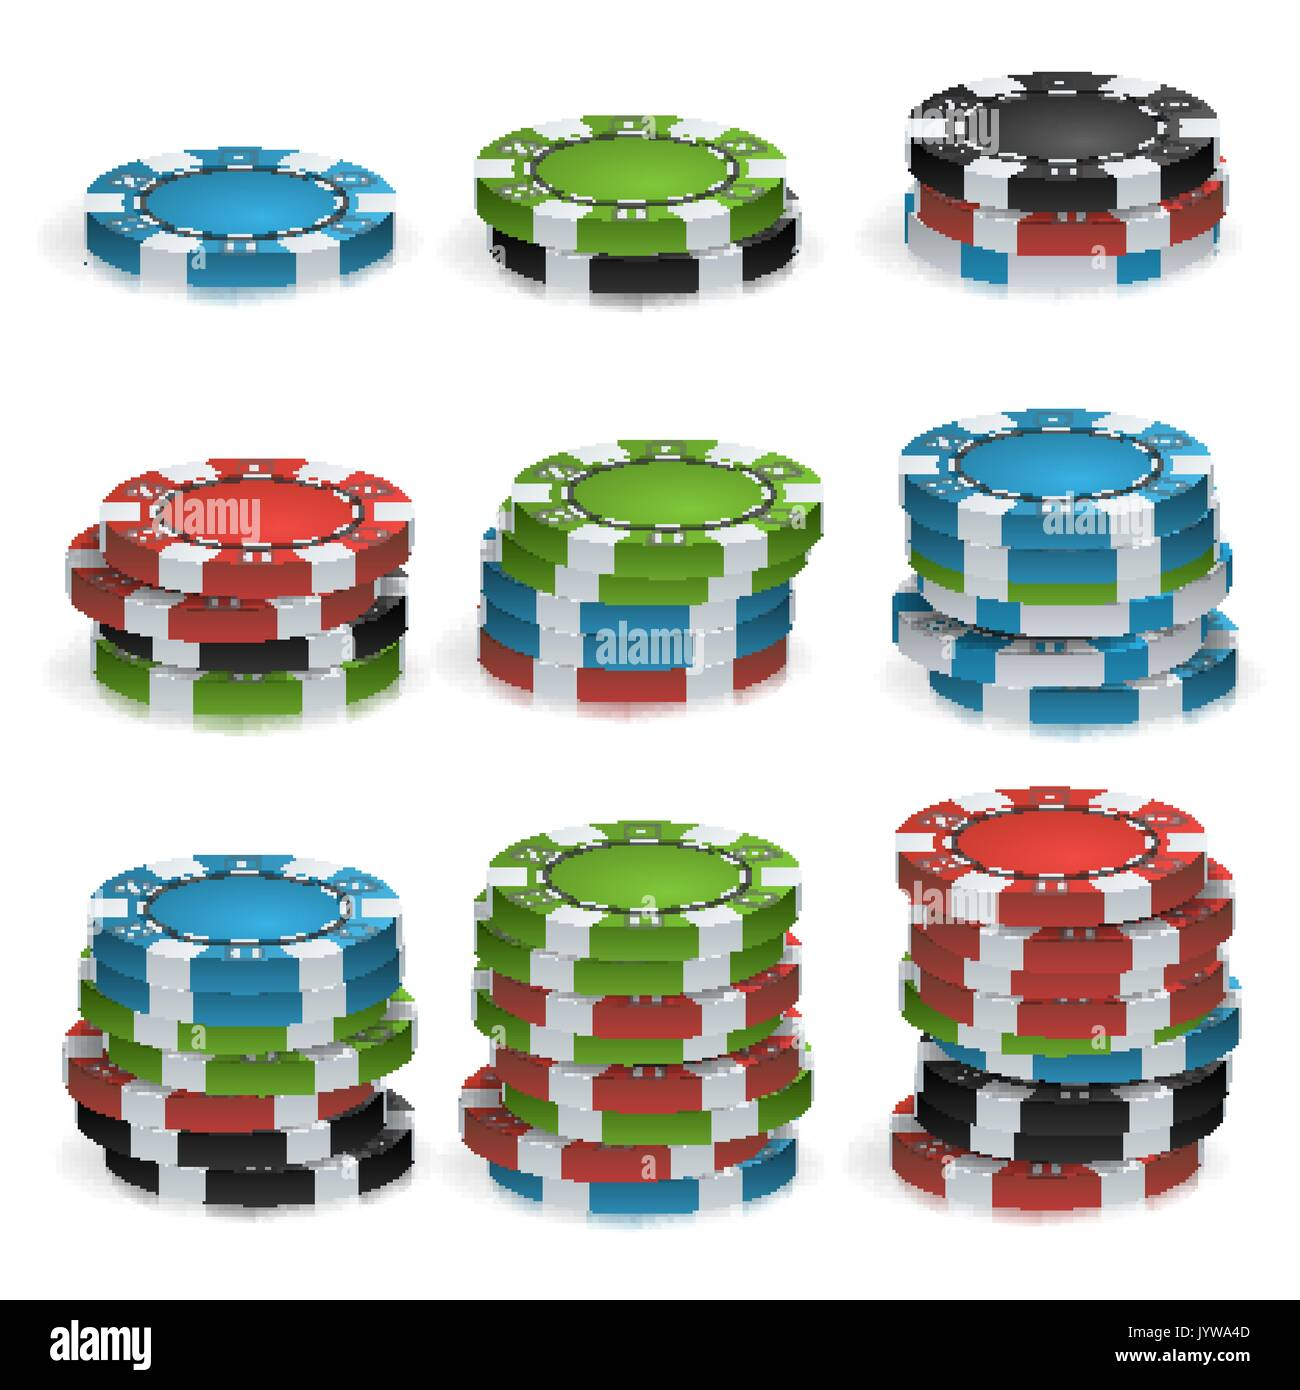 poker chips stacks vector plastic white red black blue green casino chips illustration for online casino gambling club poker billboard